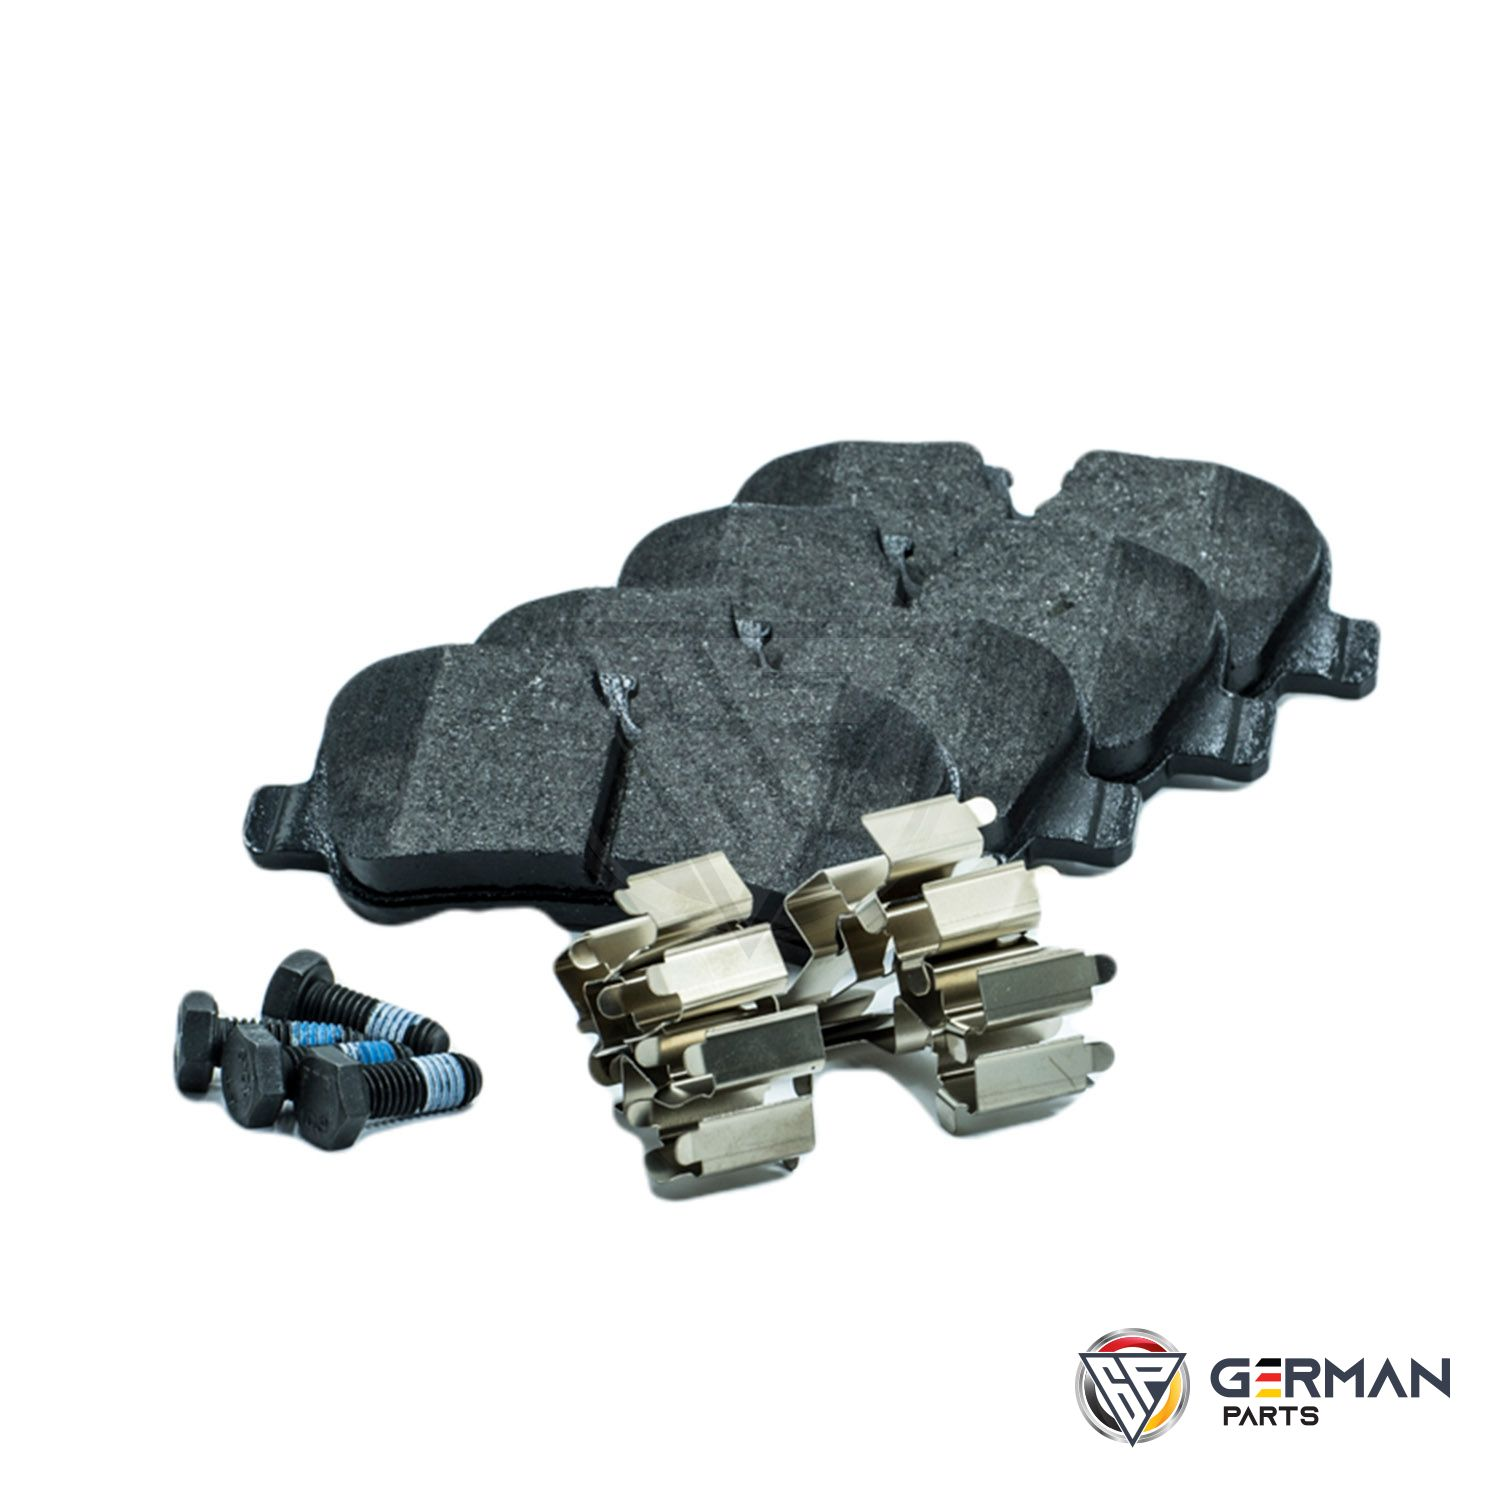 Buy Textar Rear Brake Pad Set SFP500140 - German Parts